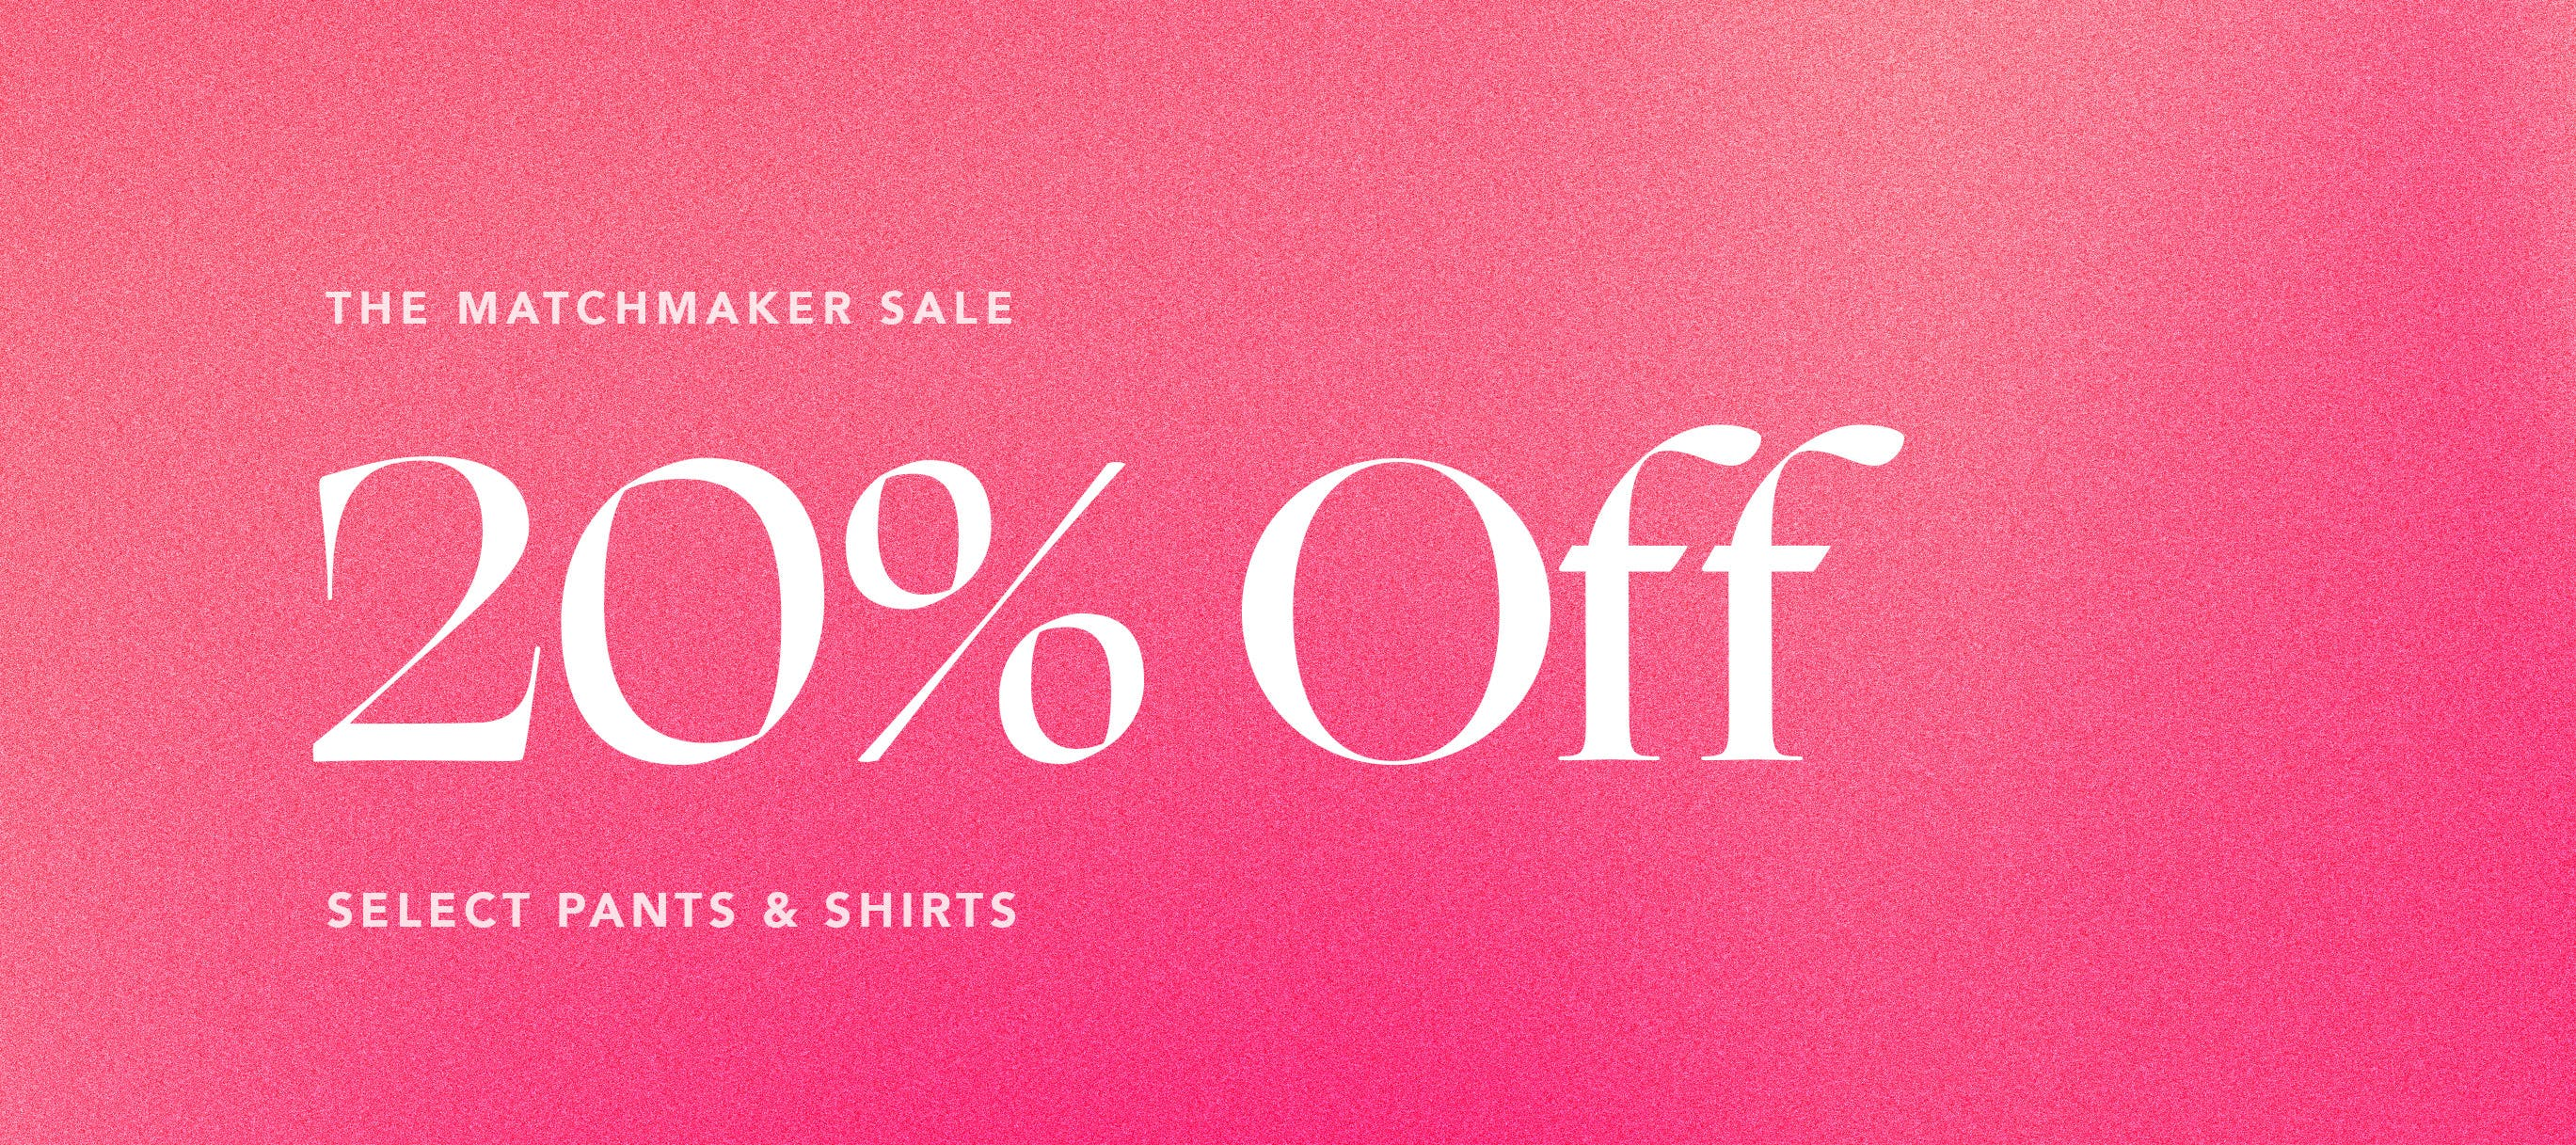 The Matchmaker Sale 20% Off Select Pants & Shirts Use Code: MATCHMADE Limited Time Only